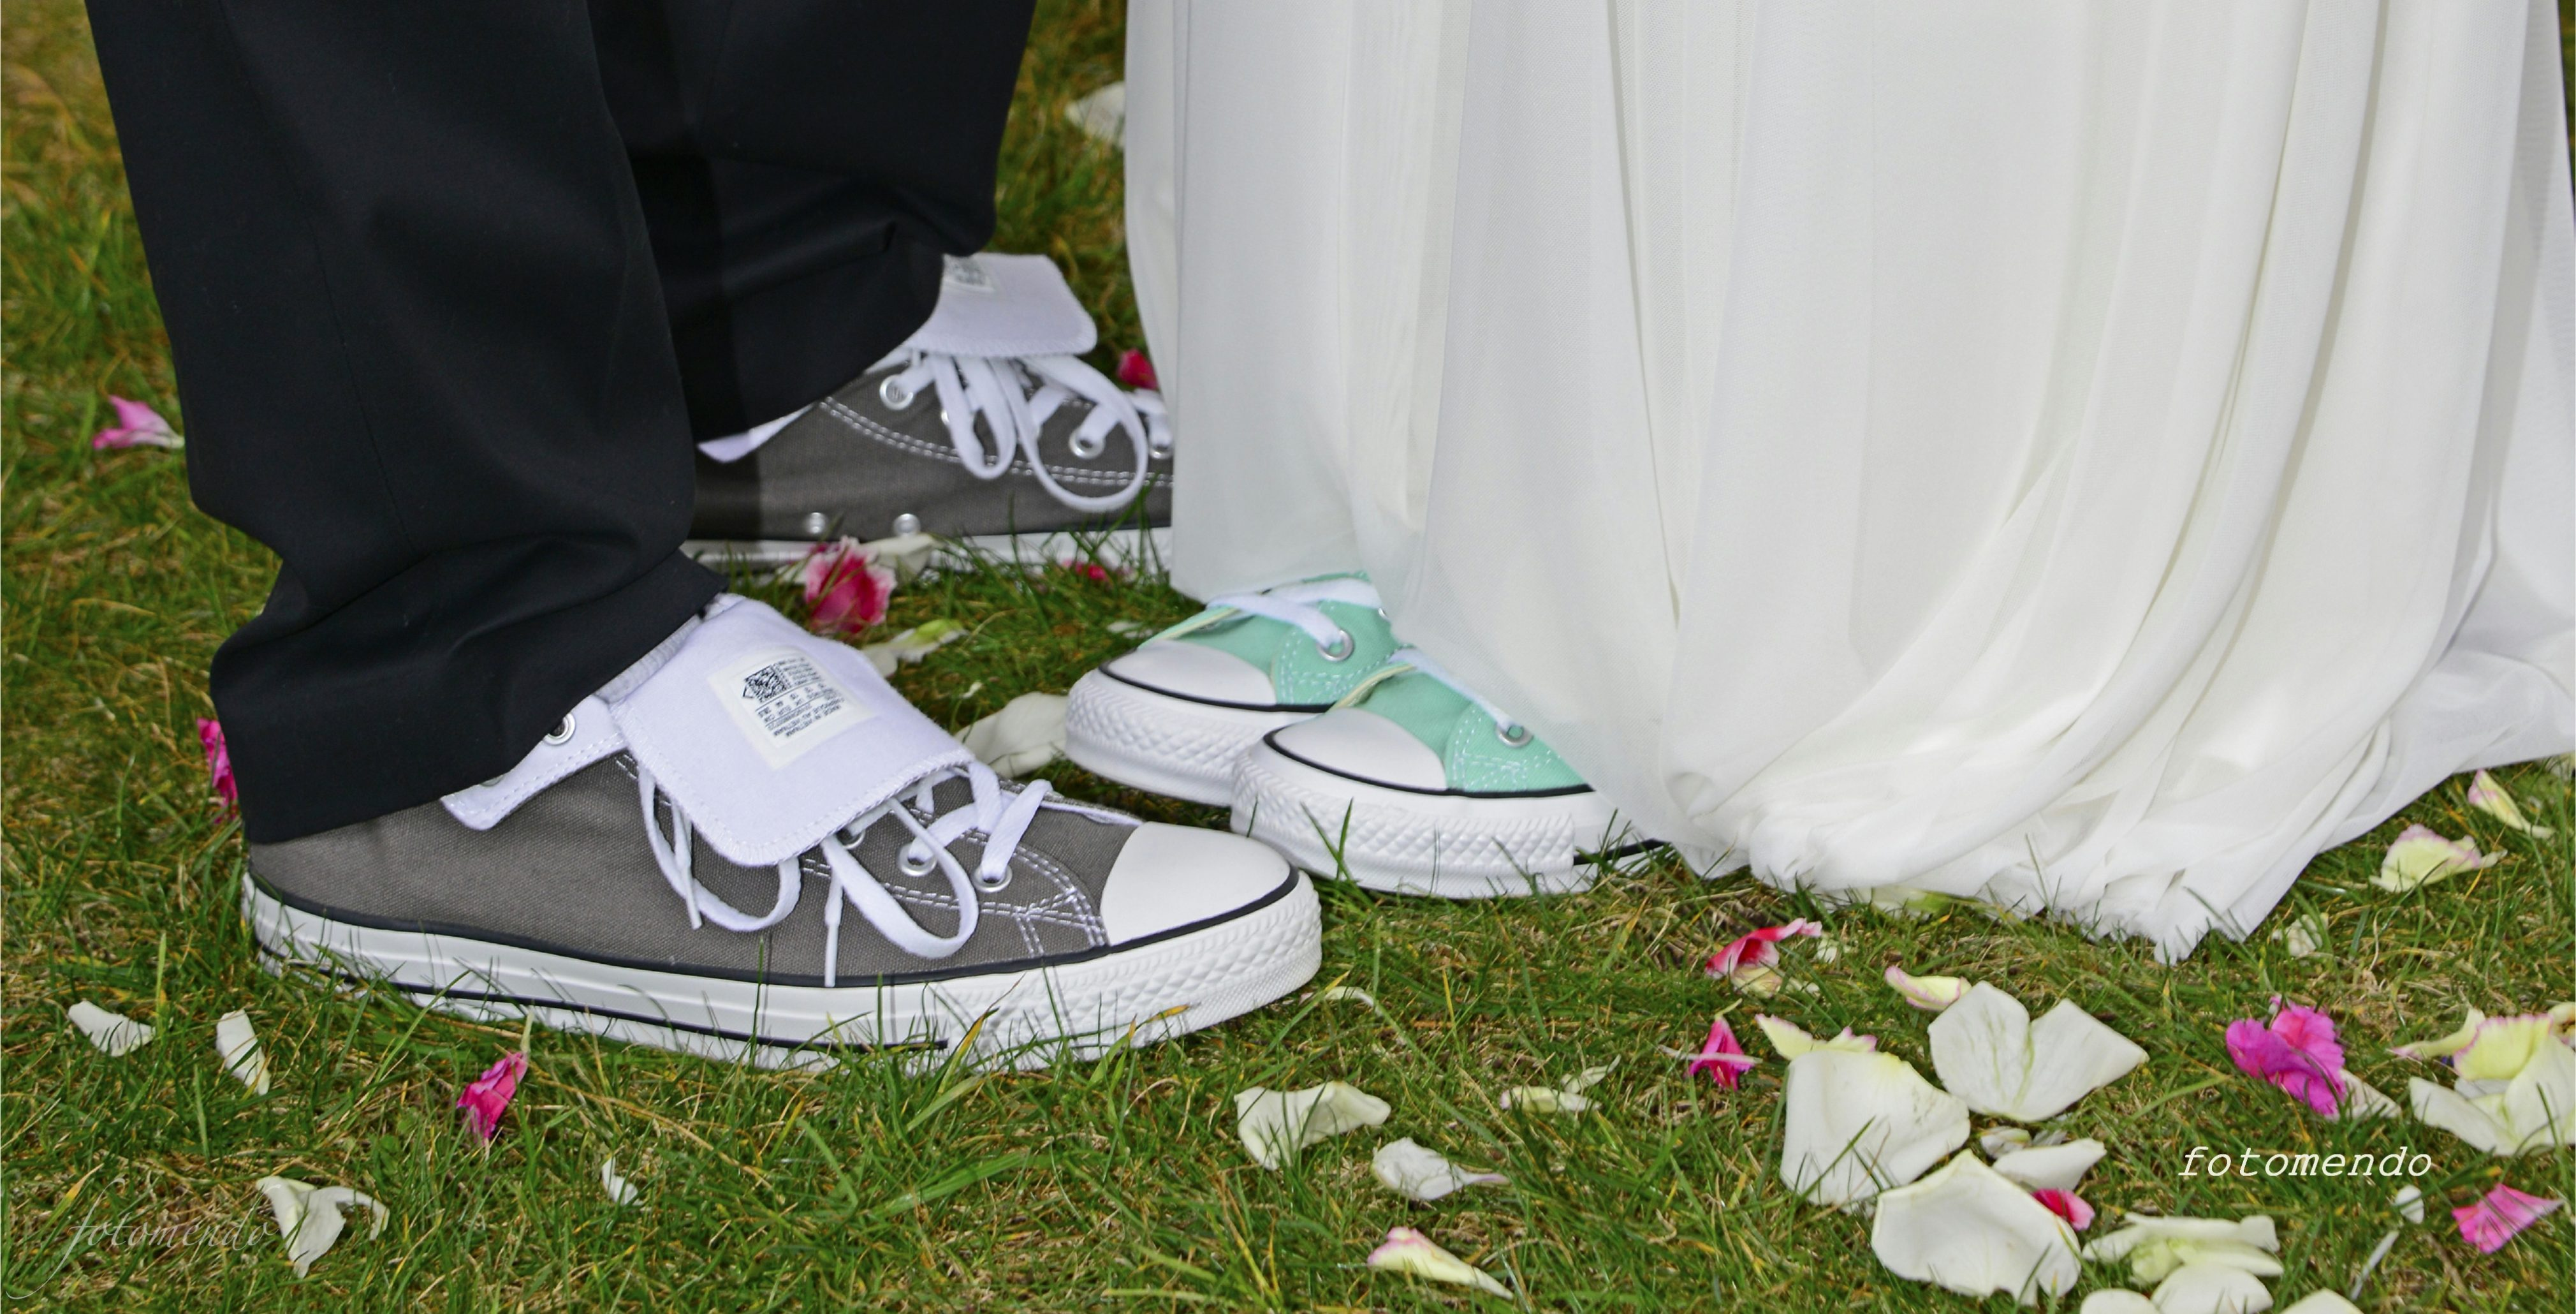 Converse sneakers complement Nicole and Brent's bridal attire for their Elope Mendocino wedding.